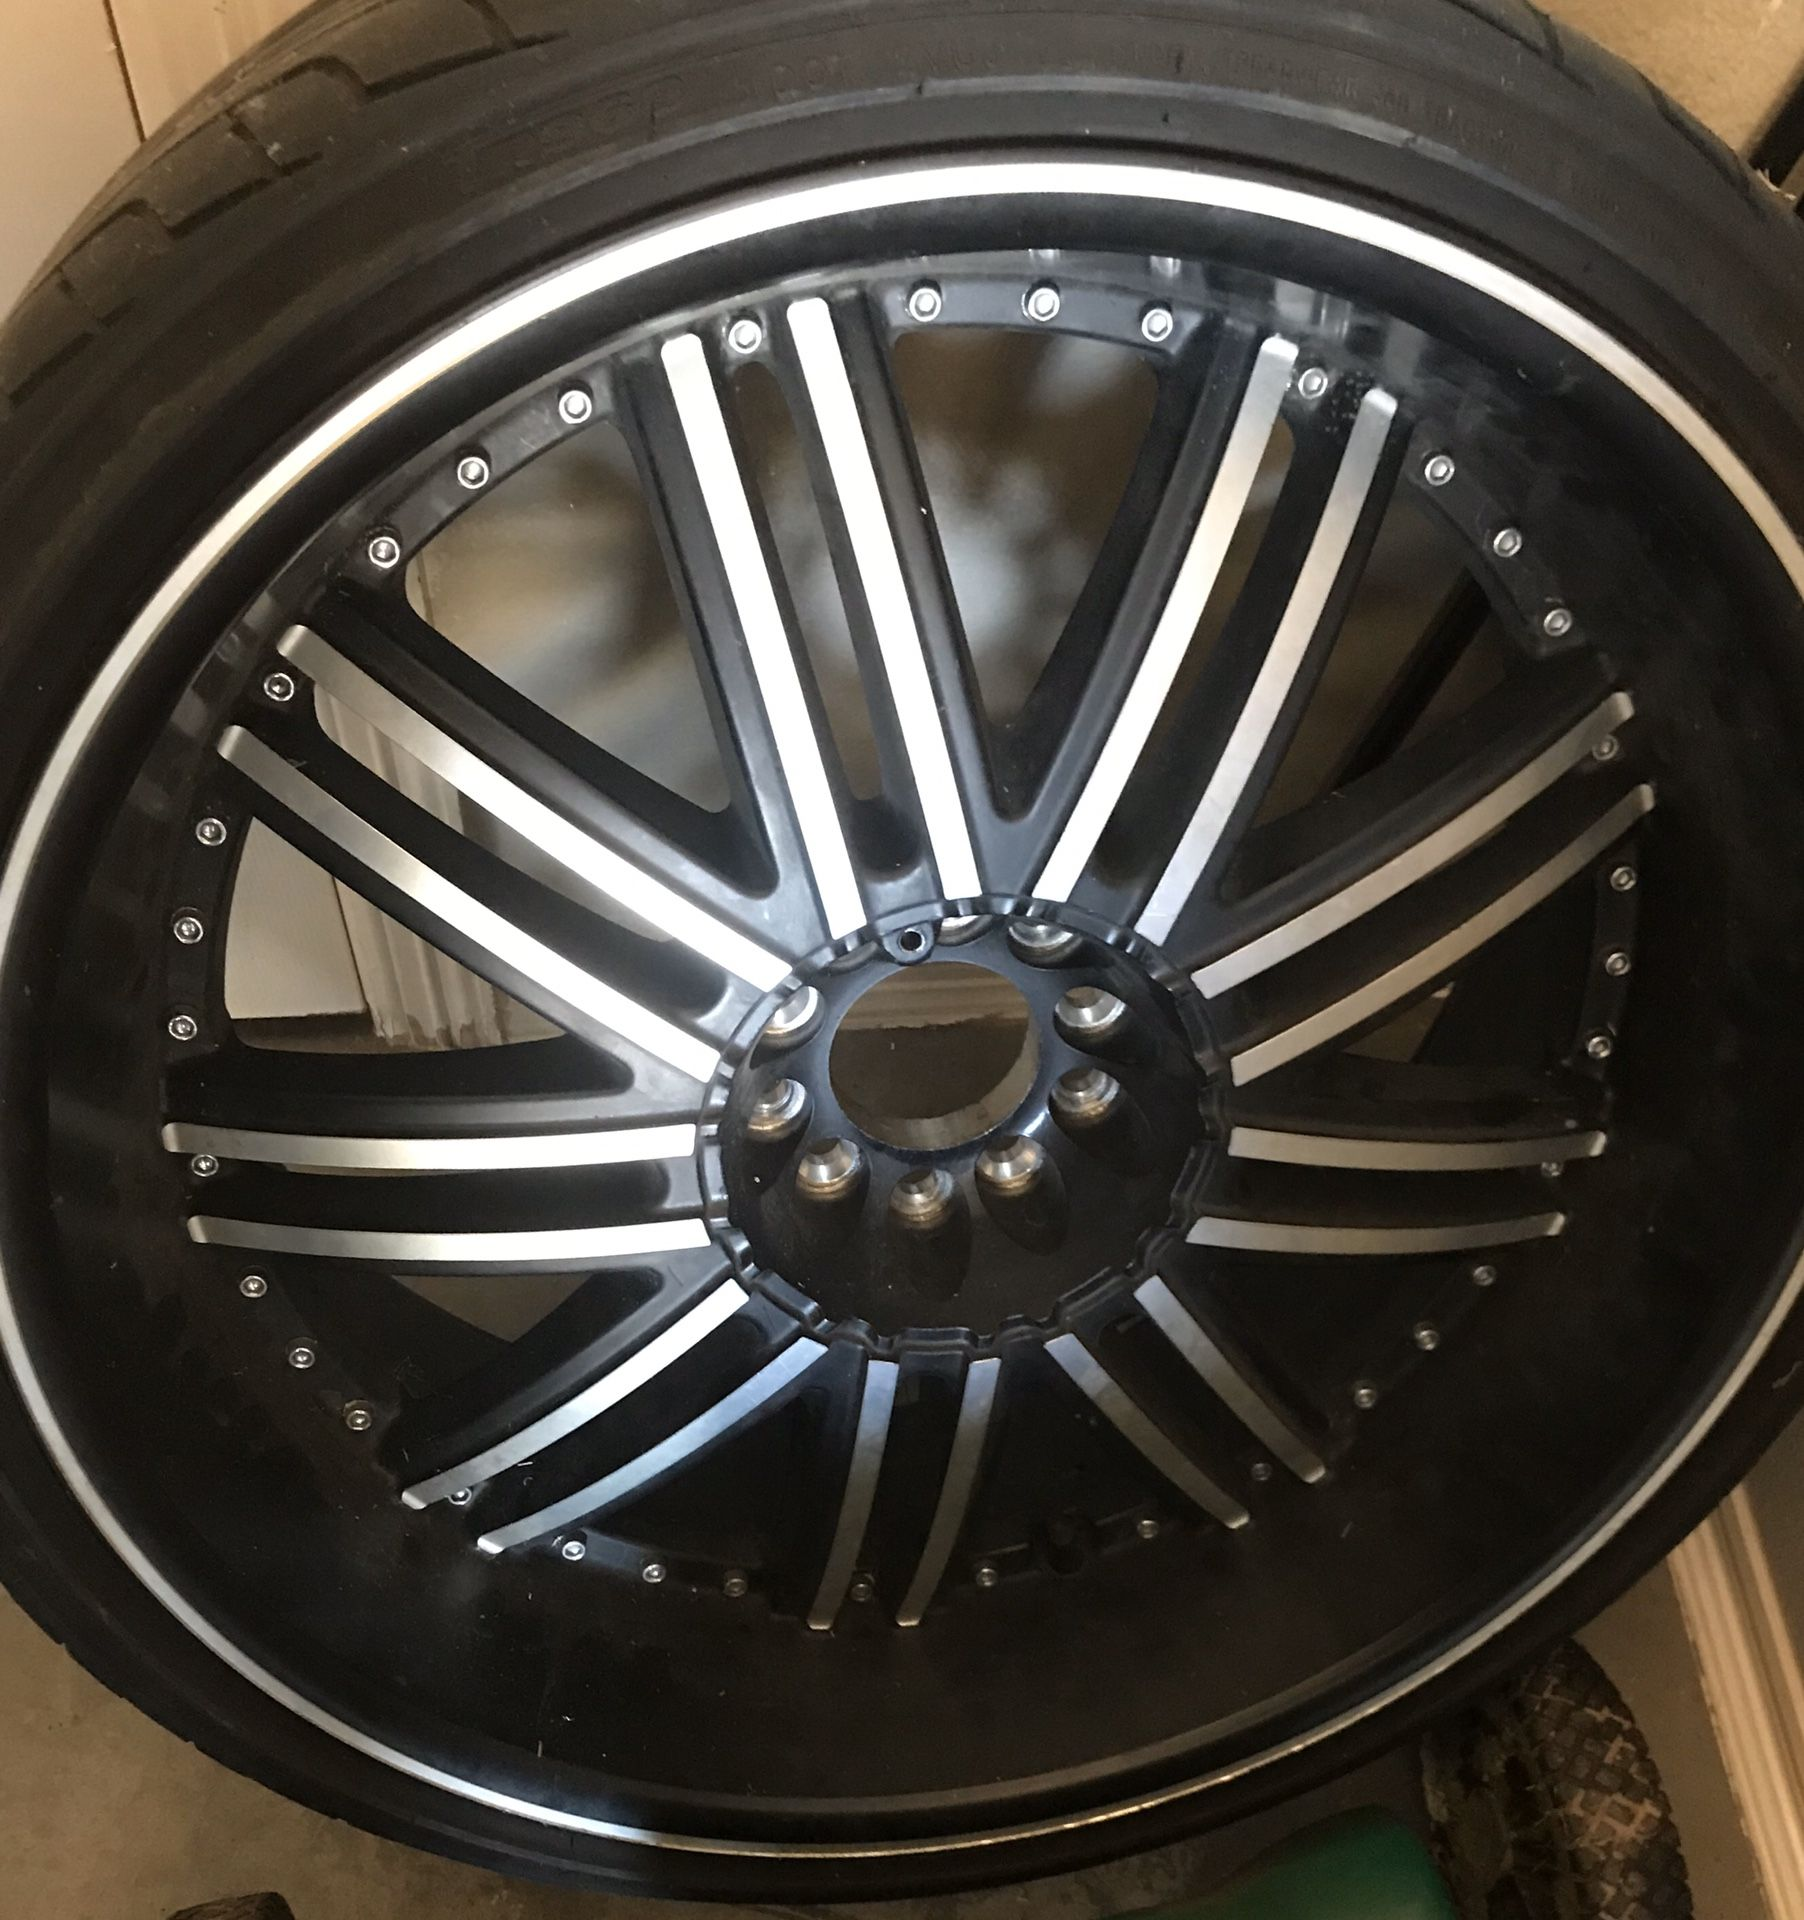 1 rim and tires